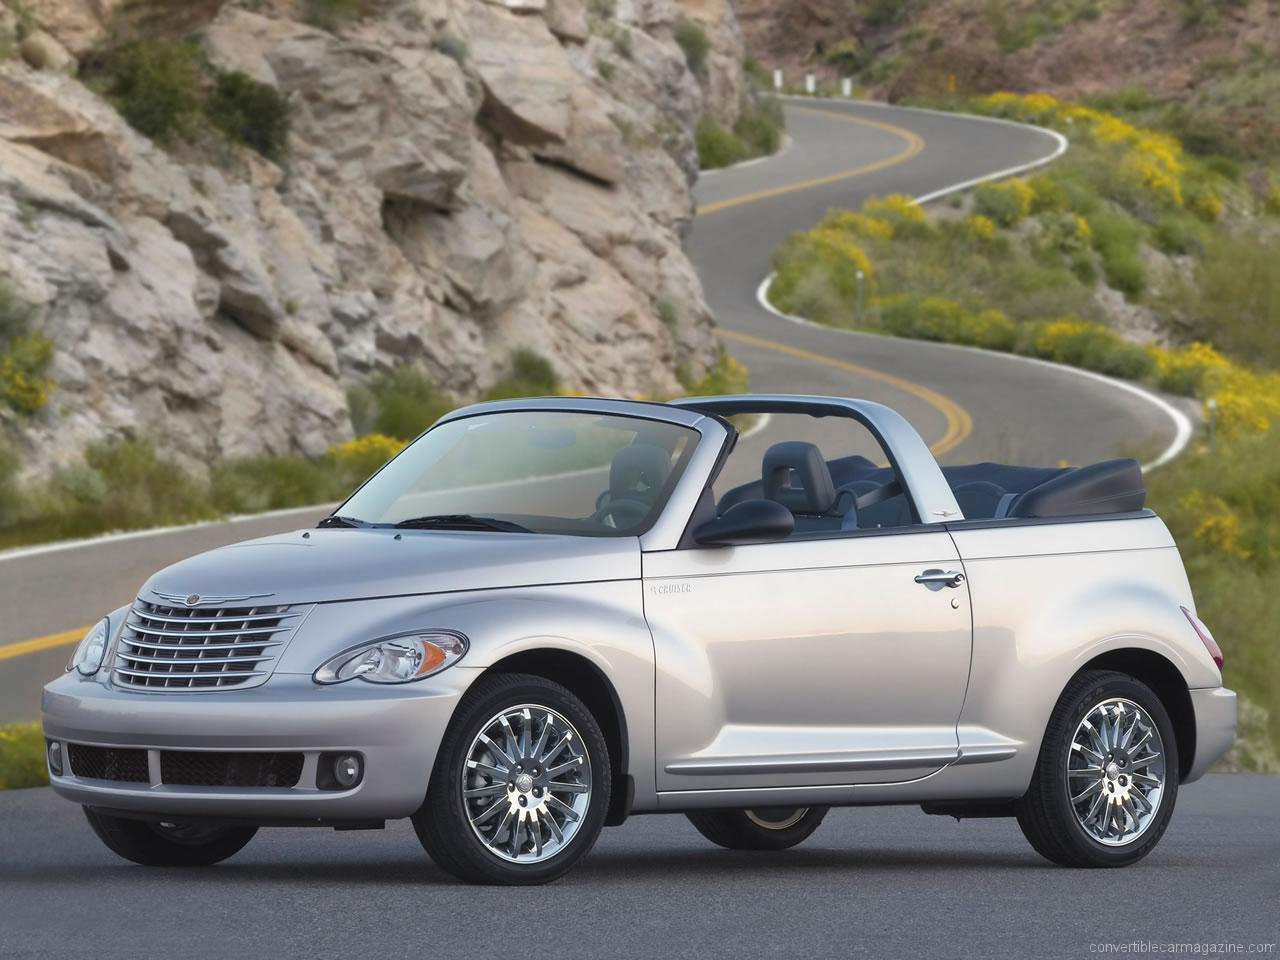 2005 Convertible Pt Cruiser Engine Diagram Archive Of Automotive Fuse Box Location Chrysler Buying Guide Rh Convertiblecarmagazine Com